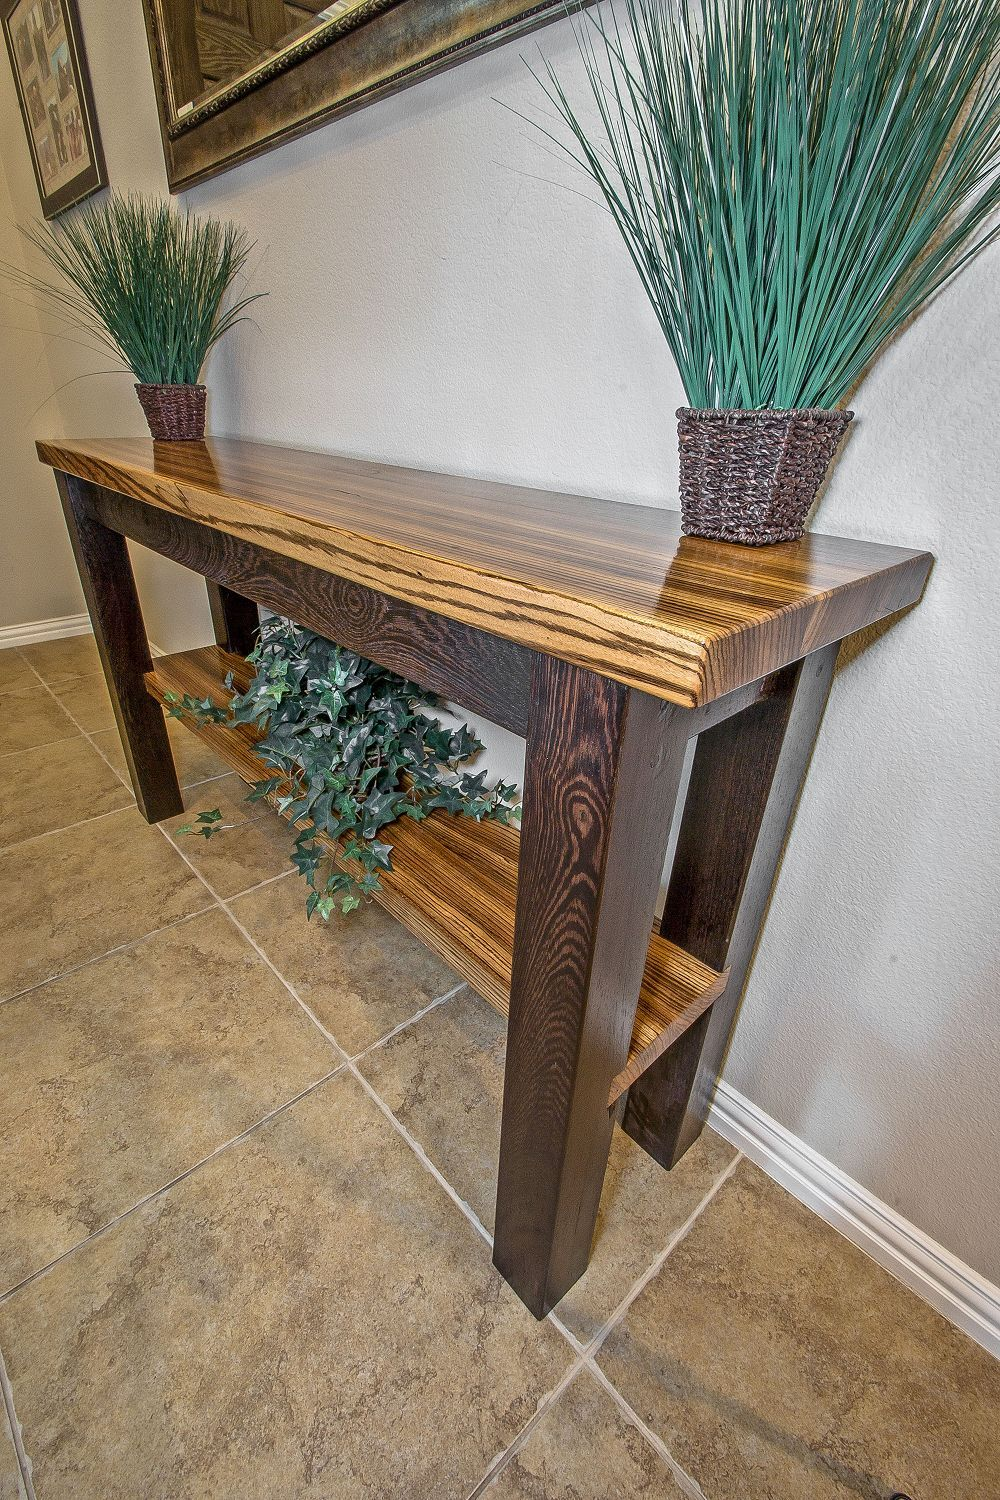 This beautiful Zebrawood Accent Table is completely built